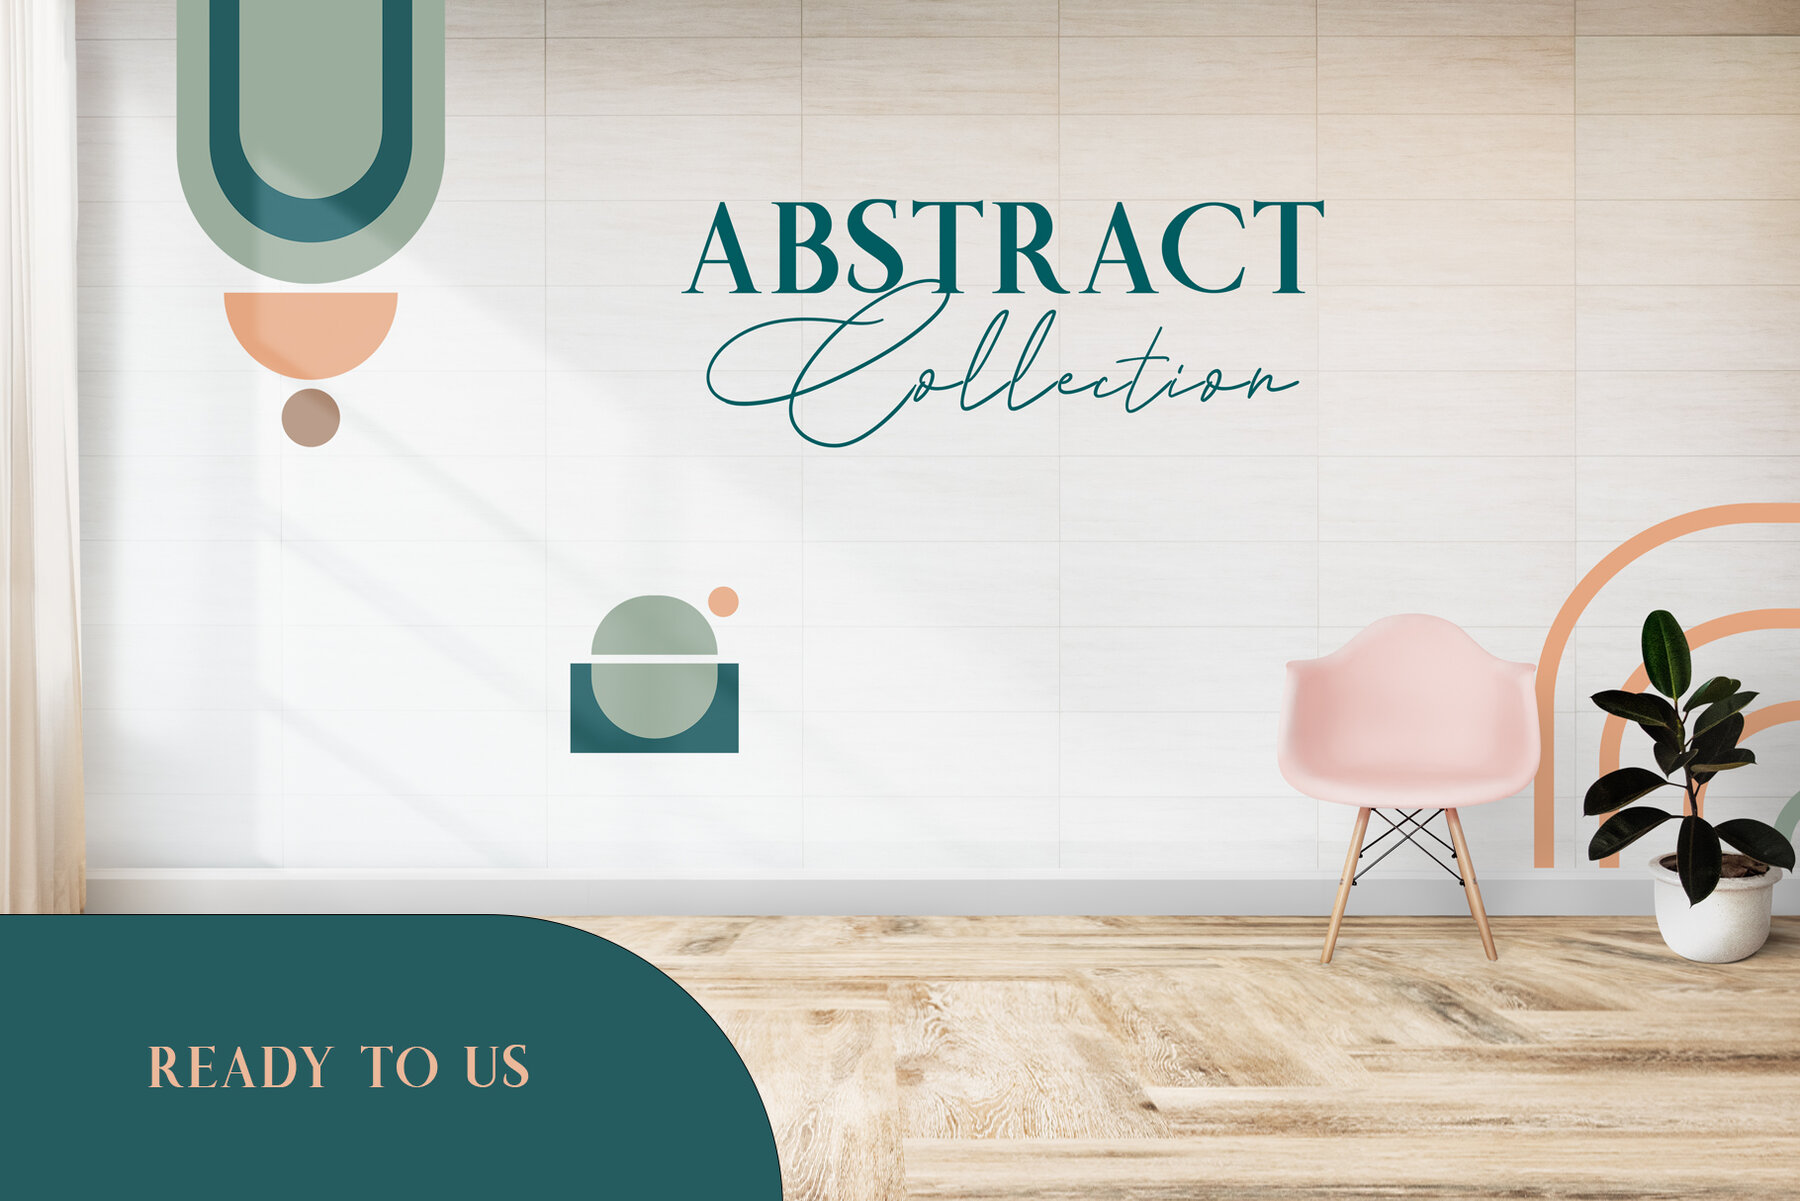 Abstract Geometric Collection